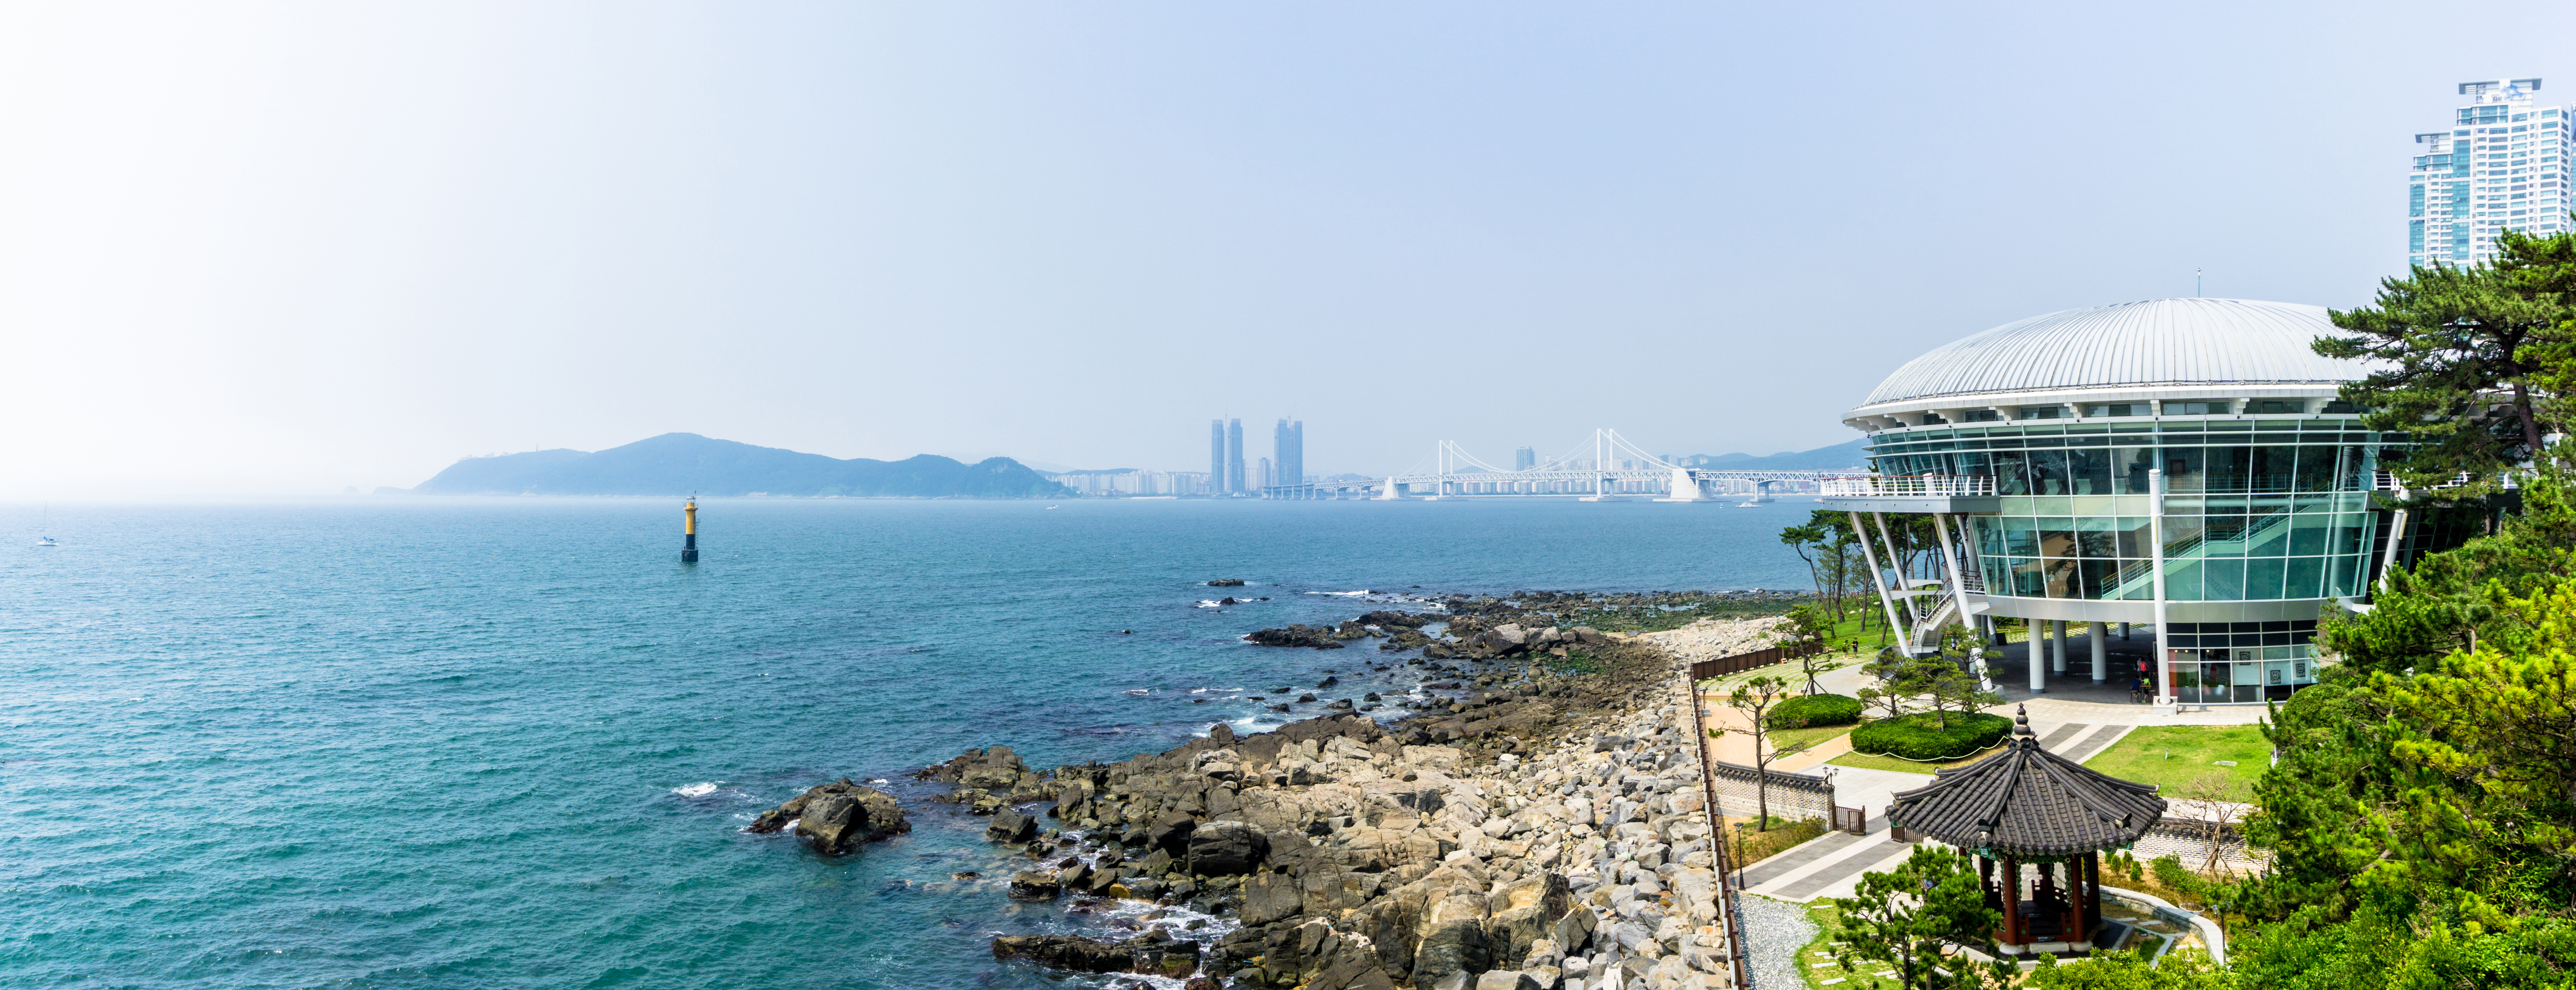 The coast of the APEC member country, which is freely visited by the holders of the Business Travel Card